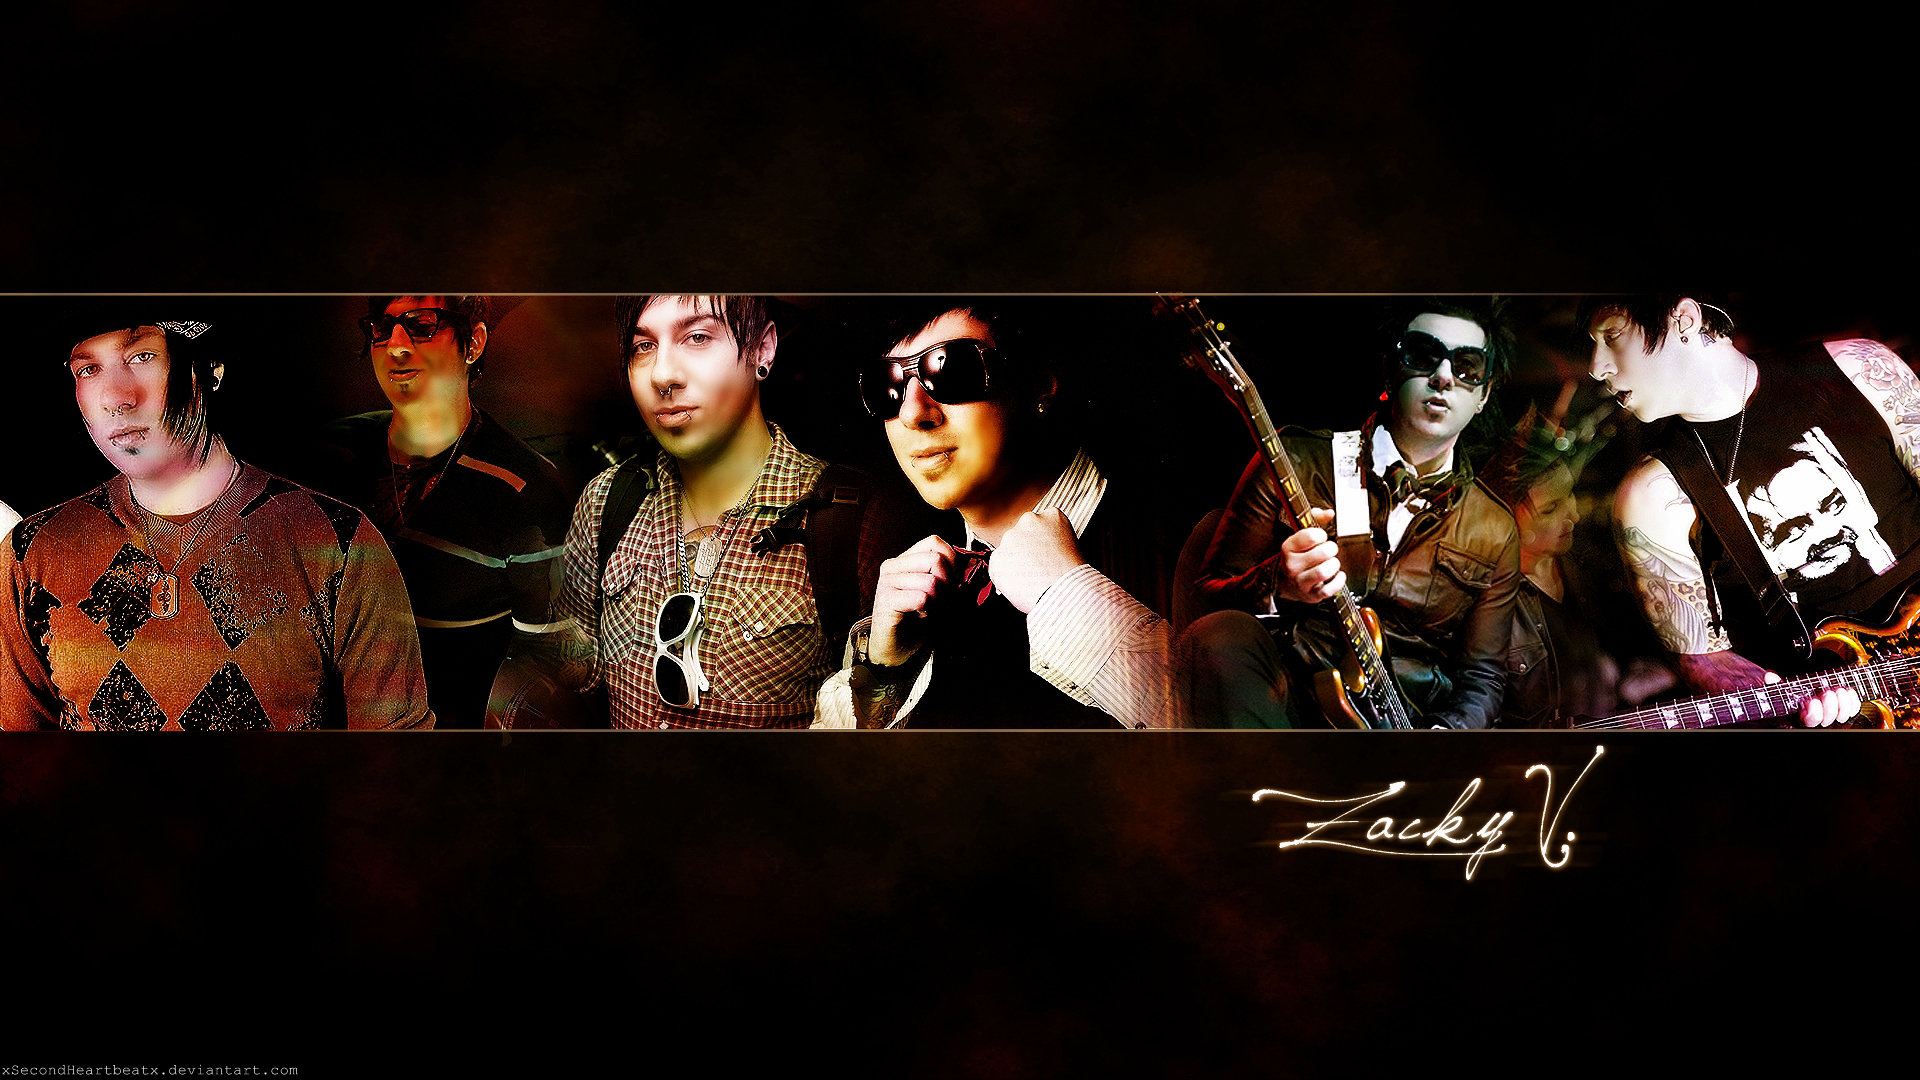 Avenged sevenfold a7x wallpapers 1920x1080 full hd 1080p free download avenged sevenfold a7x background id470717 hd 1920x1080 for computer voltagebd Image collections